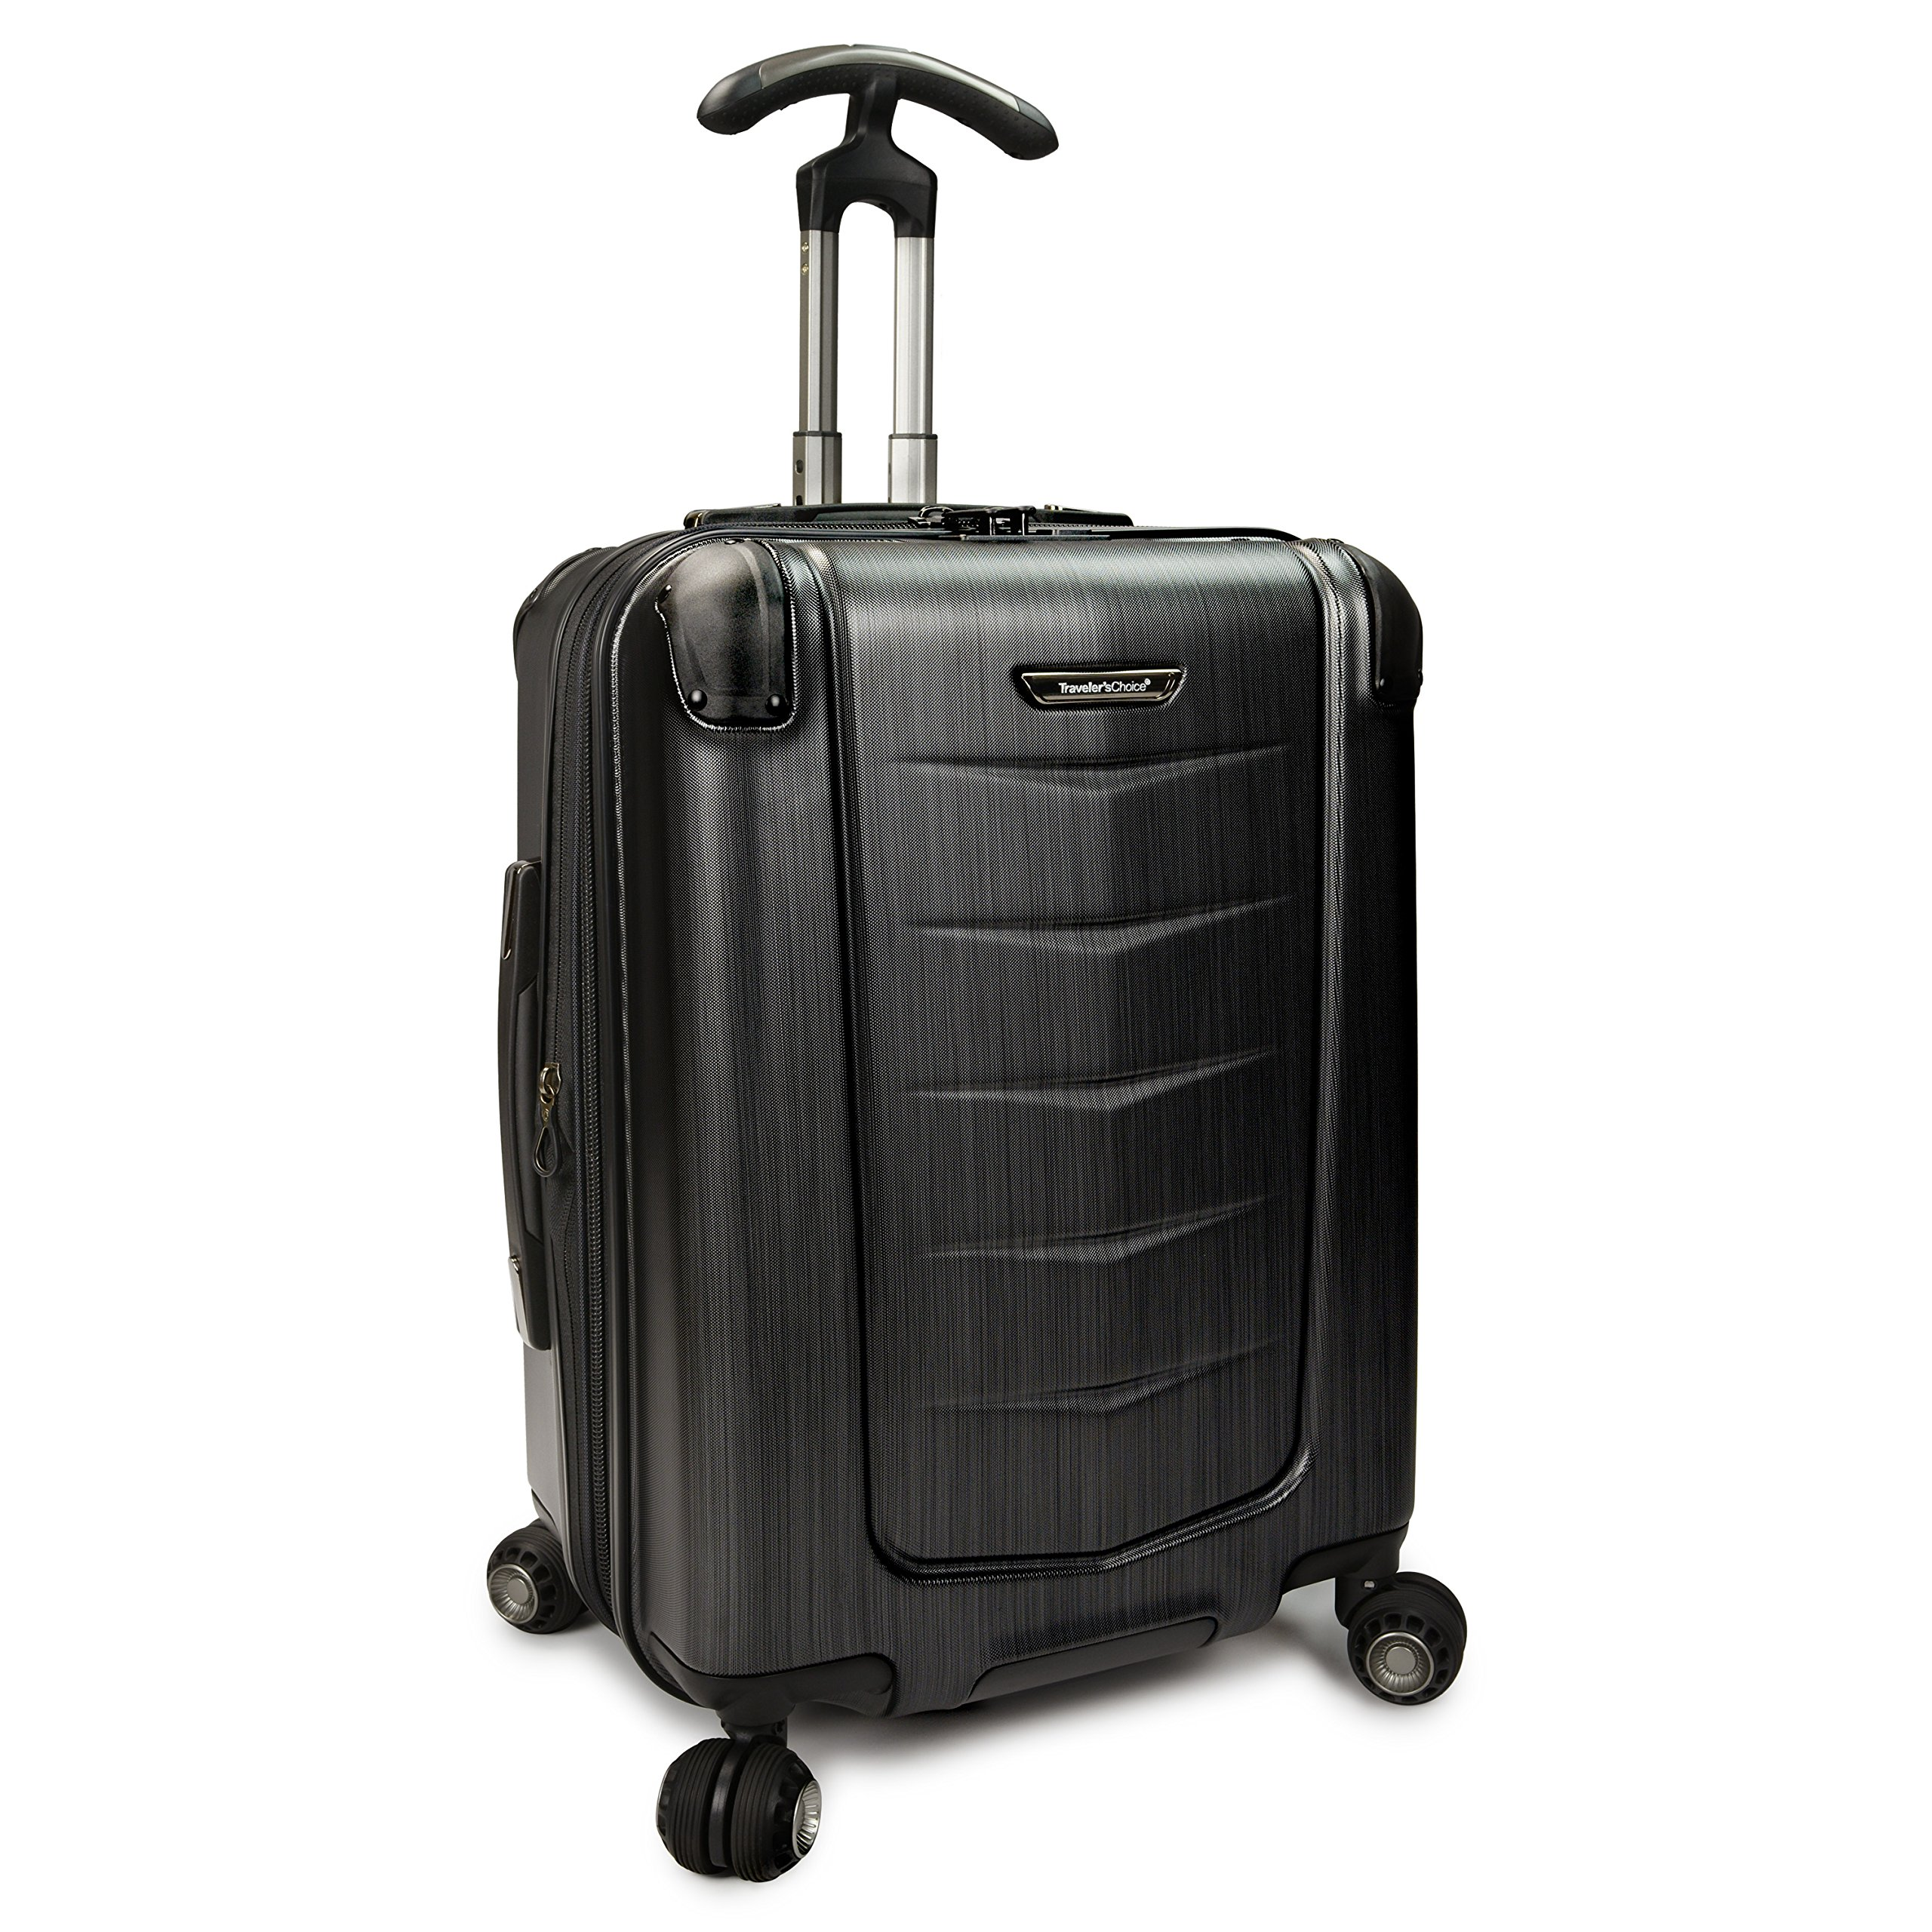 Traveler's Choice Silverwood Polycarbonate Hardside Expandable Spinner Luggage Case - Brush Metal  (21-Inch)